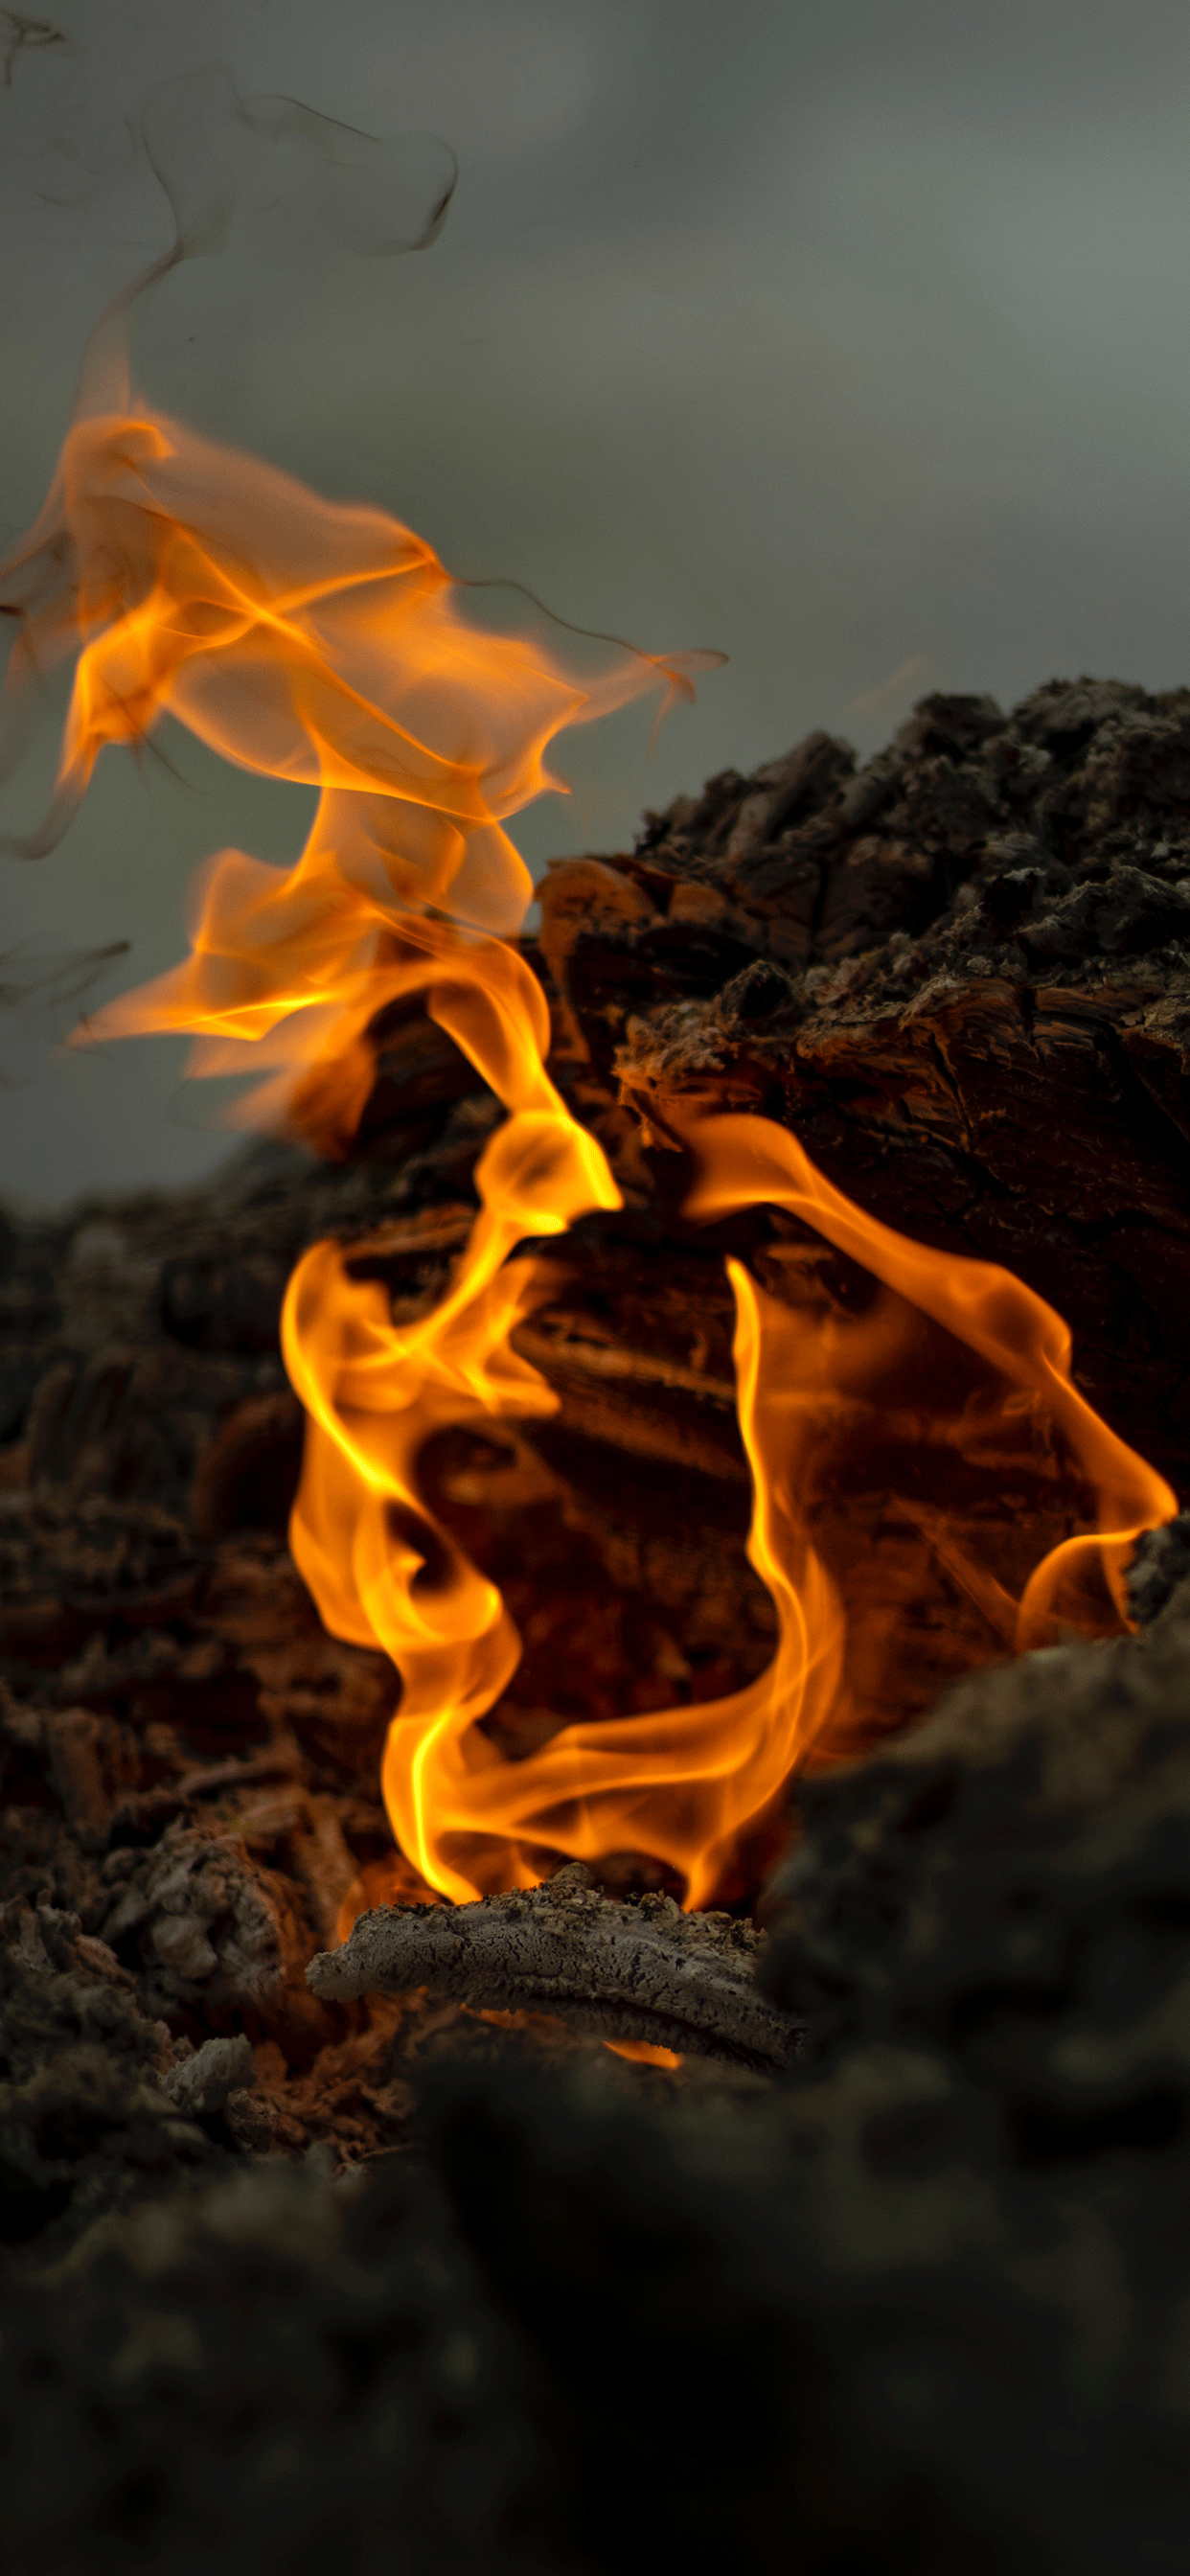 iPhone wallpapers fire flame Fire